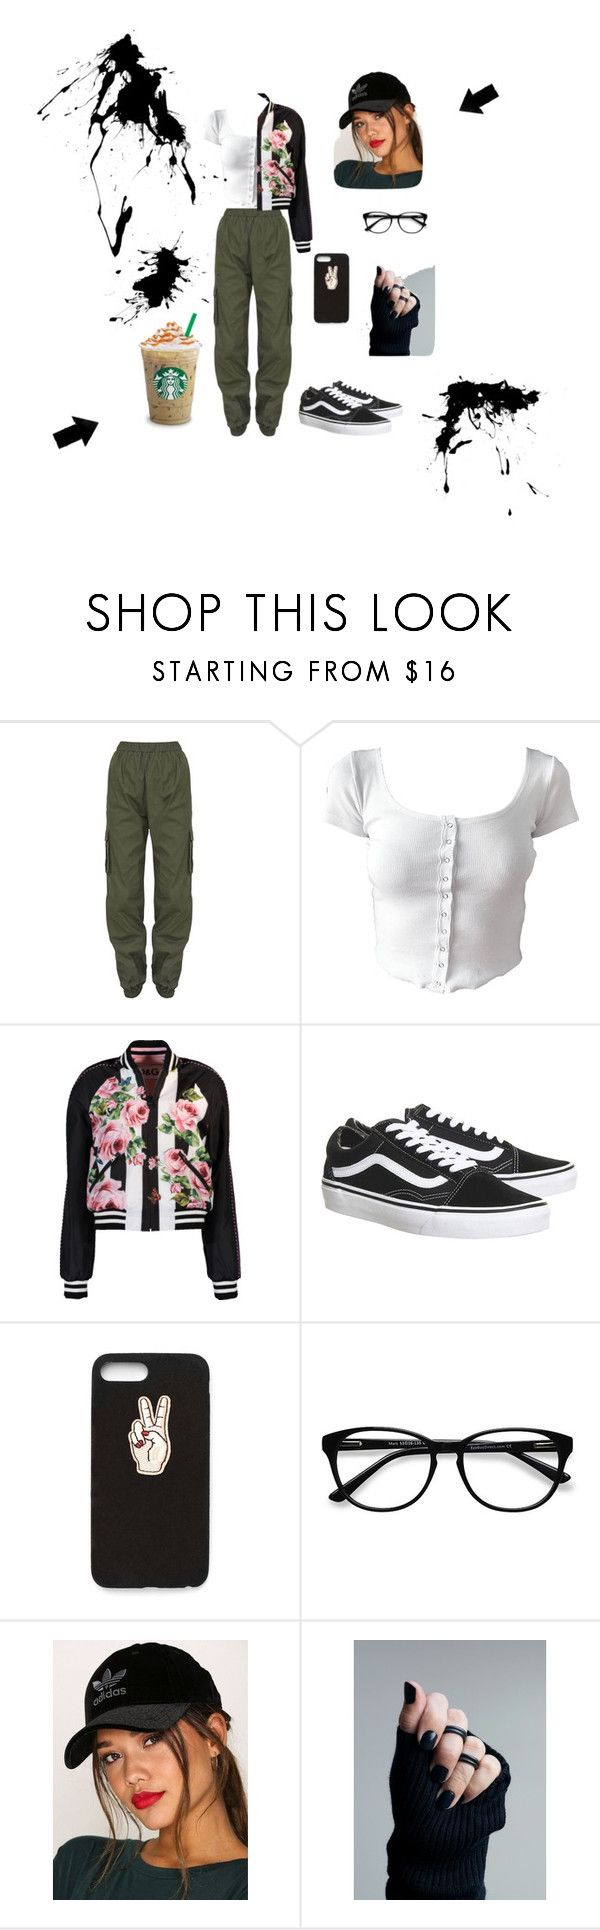 nr. 2 by patriivasca on Polyvore featuring Dolce&Gabbana, Topshop, adidas Originals, Nasty Gal and EyeBuyDirect.com